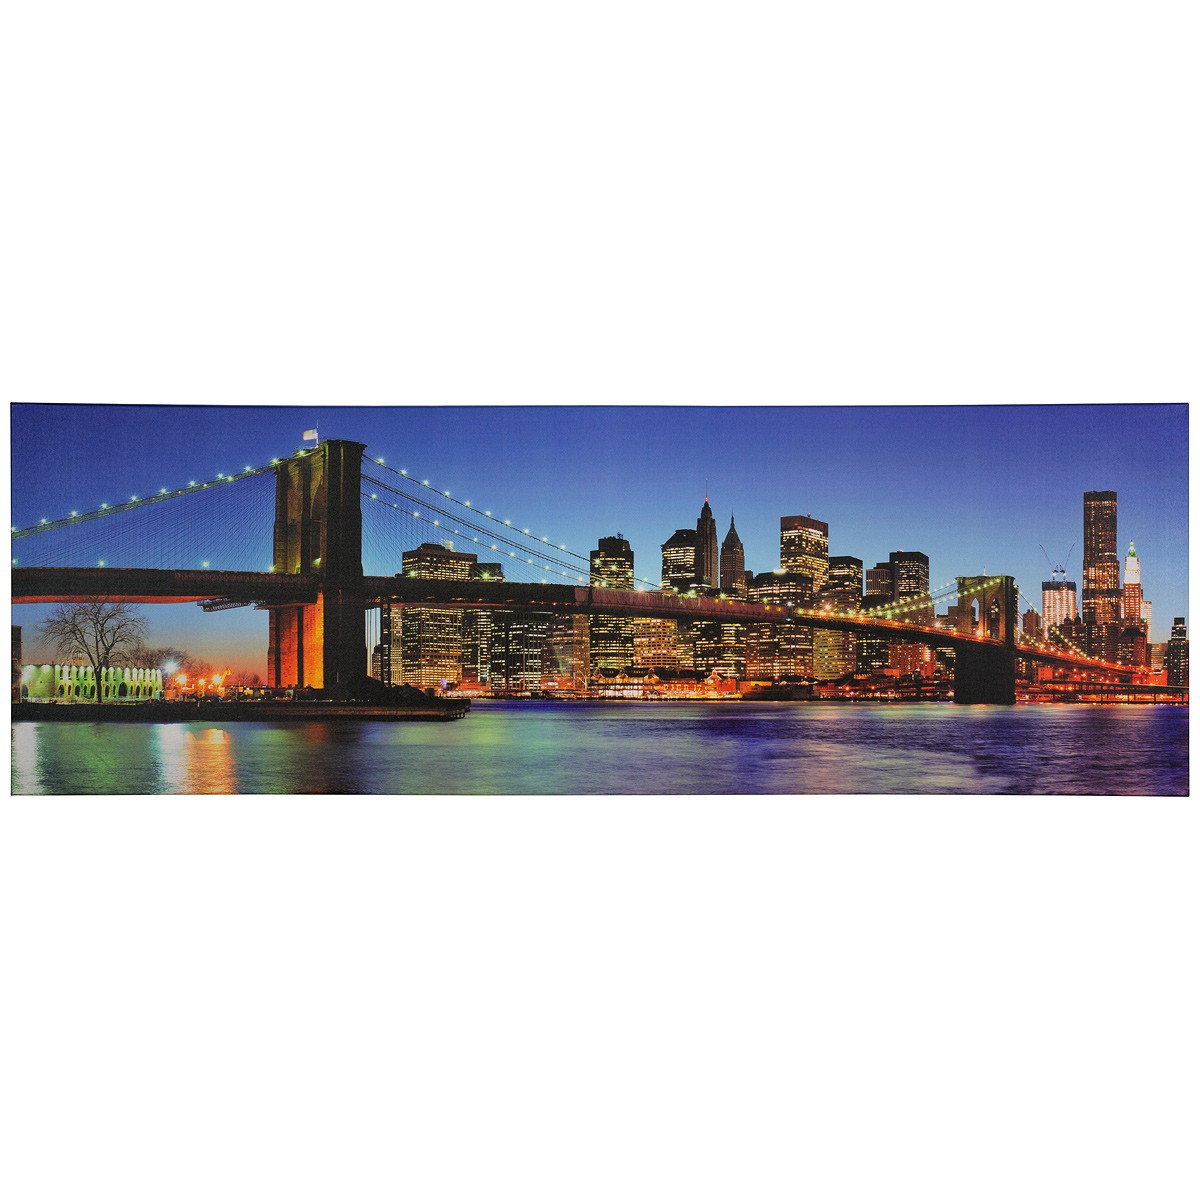 wandbild keilrahmen kunstdruck 50x150 brooklyn bridge new york nacht skyline. Black Bedroom Furniture Sets. Home Design Ideas